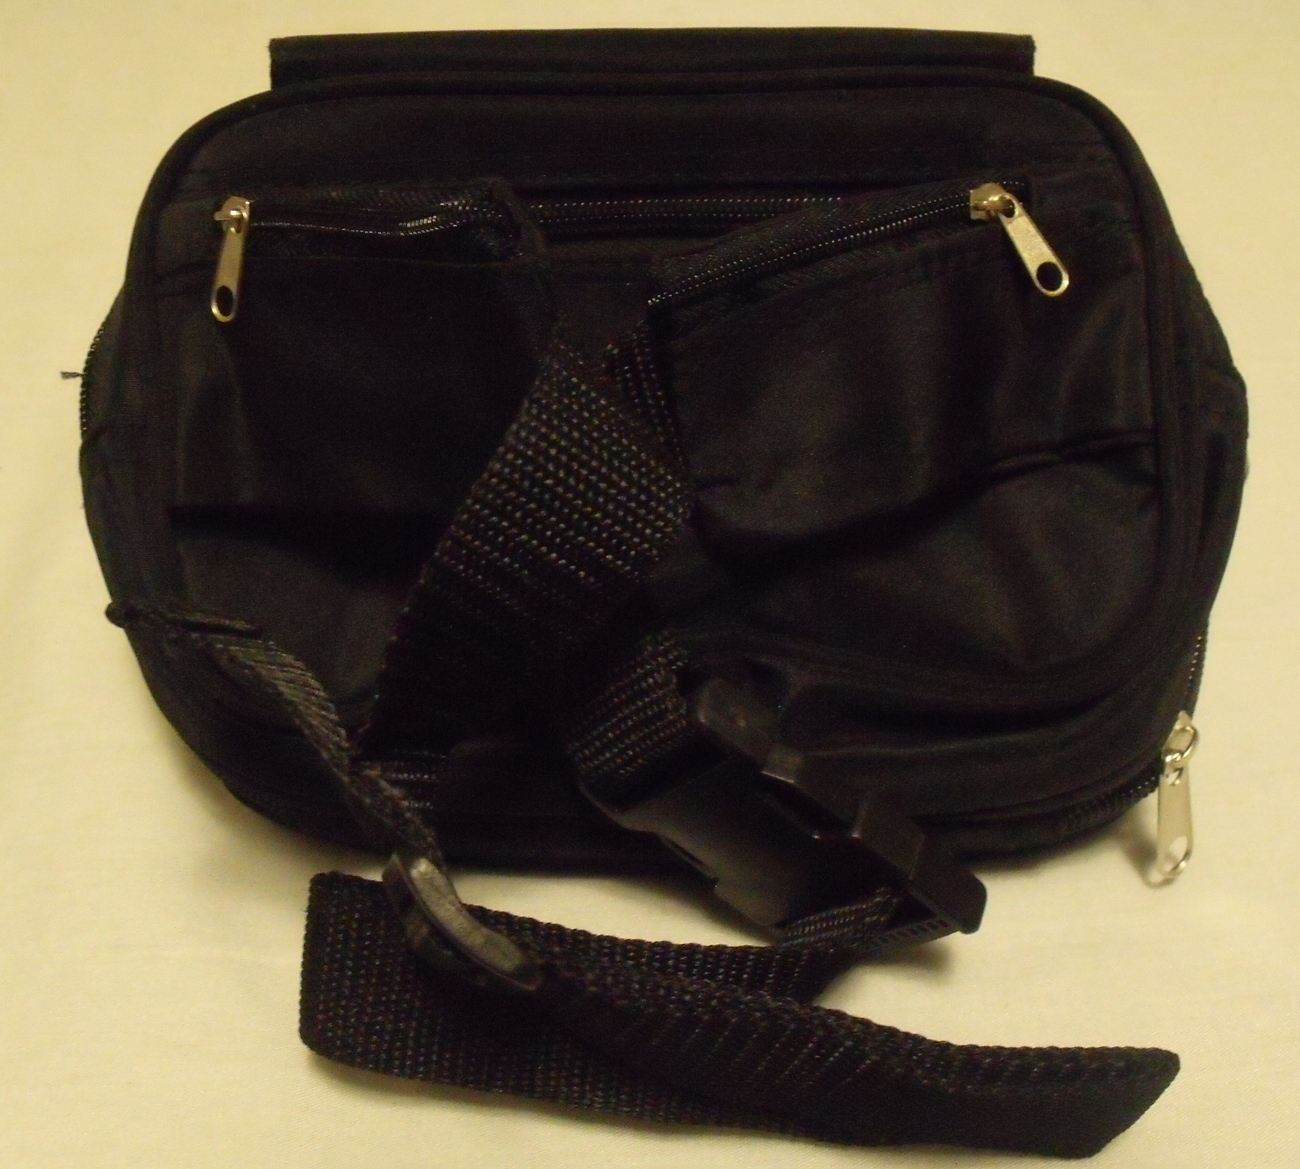 English Leather Black Fanny Pack New with tag